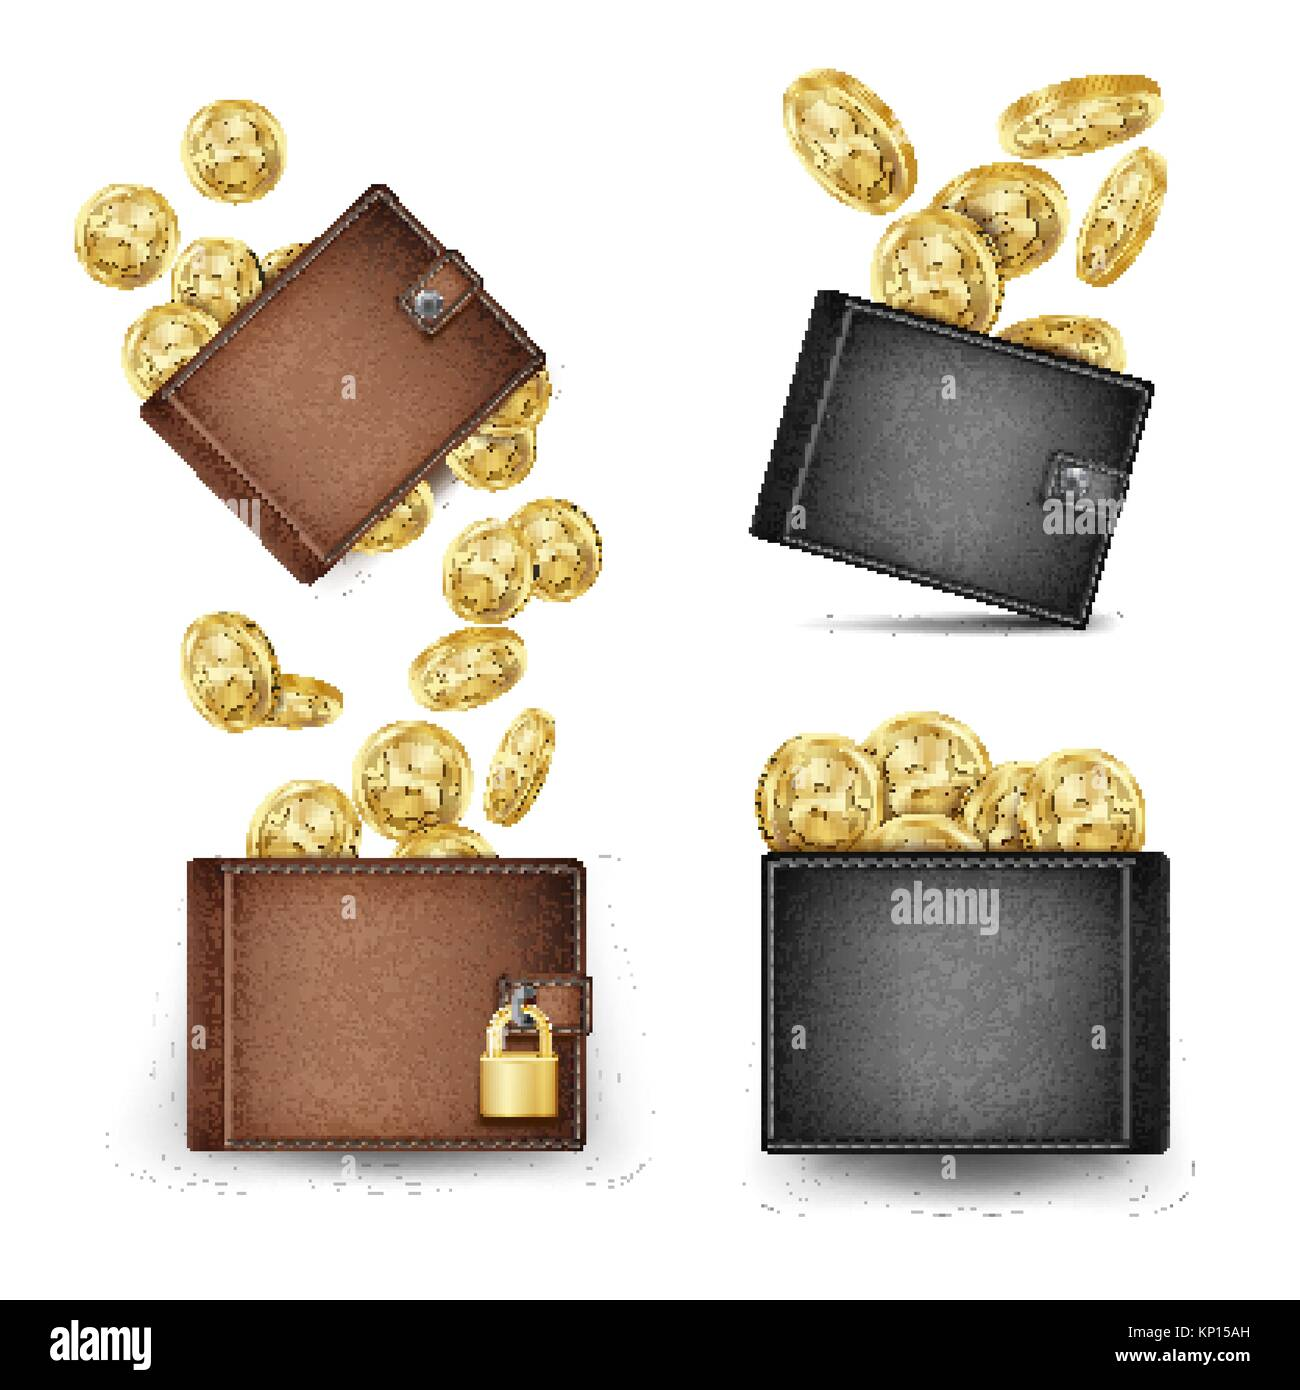 Bitcoin Wallet Set Vector. Bitcoin Gold Coins. Realistic 3d Brown And Black Bitcoin Wallet. Money Front Side. Technology - Stock Image